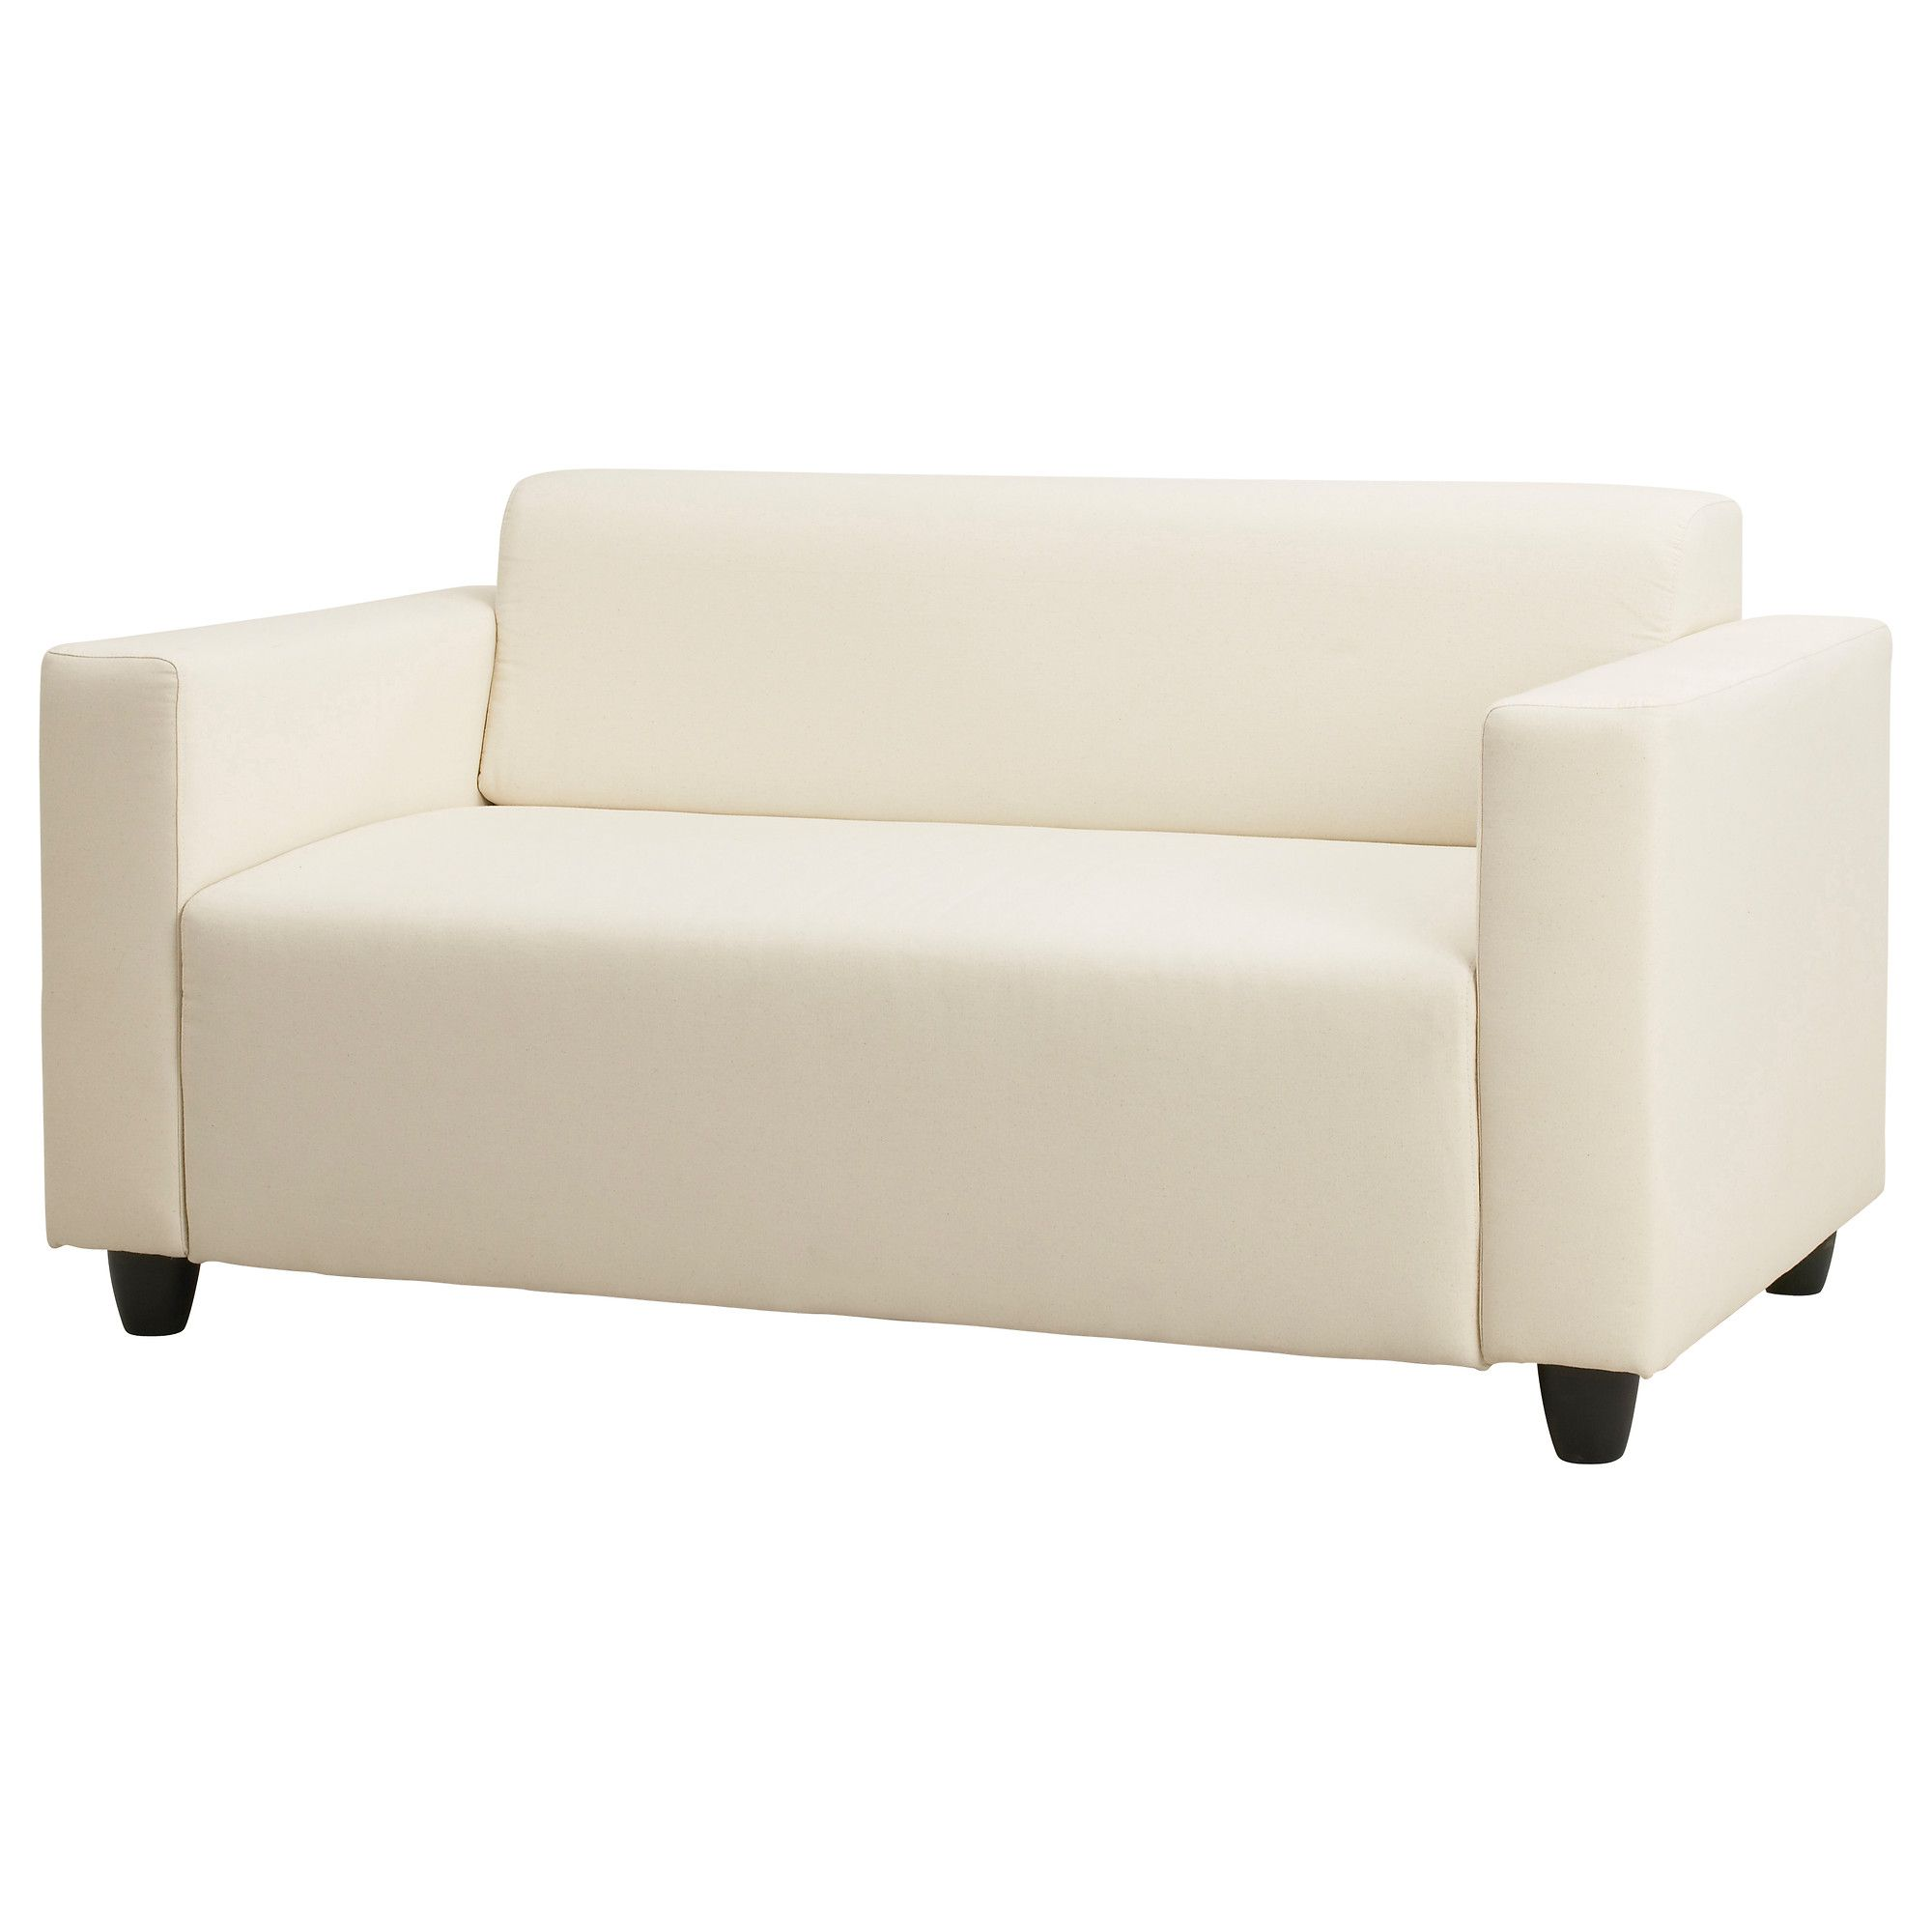 Klobo Two Seat Sofa Ikea 179 Lussebo Natural Only: sofa depth